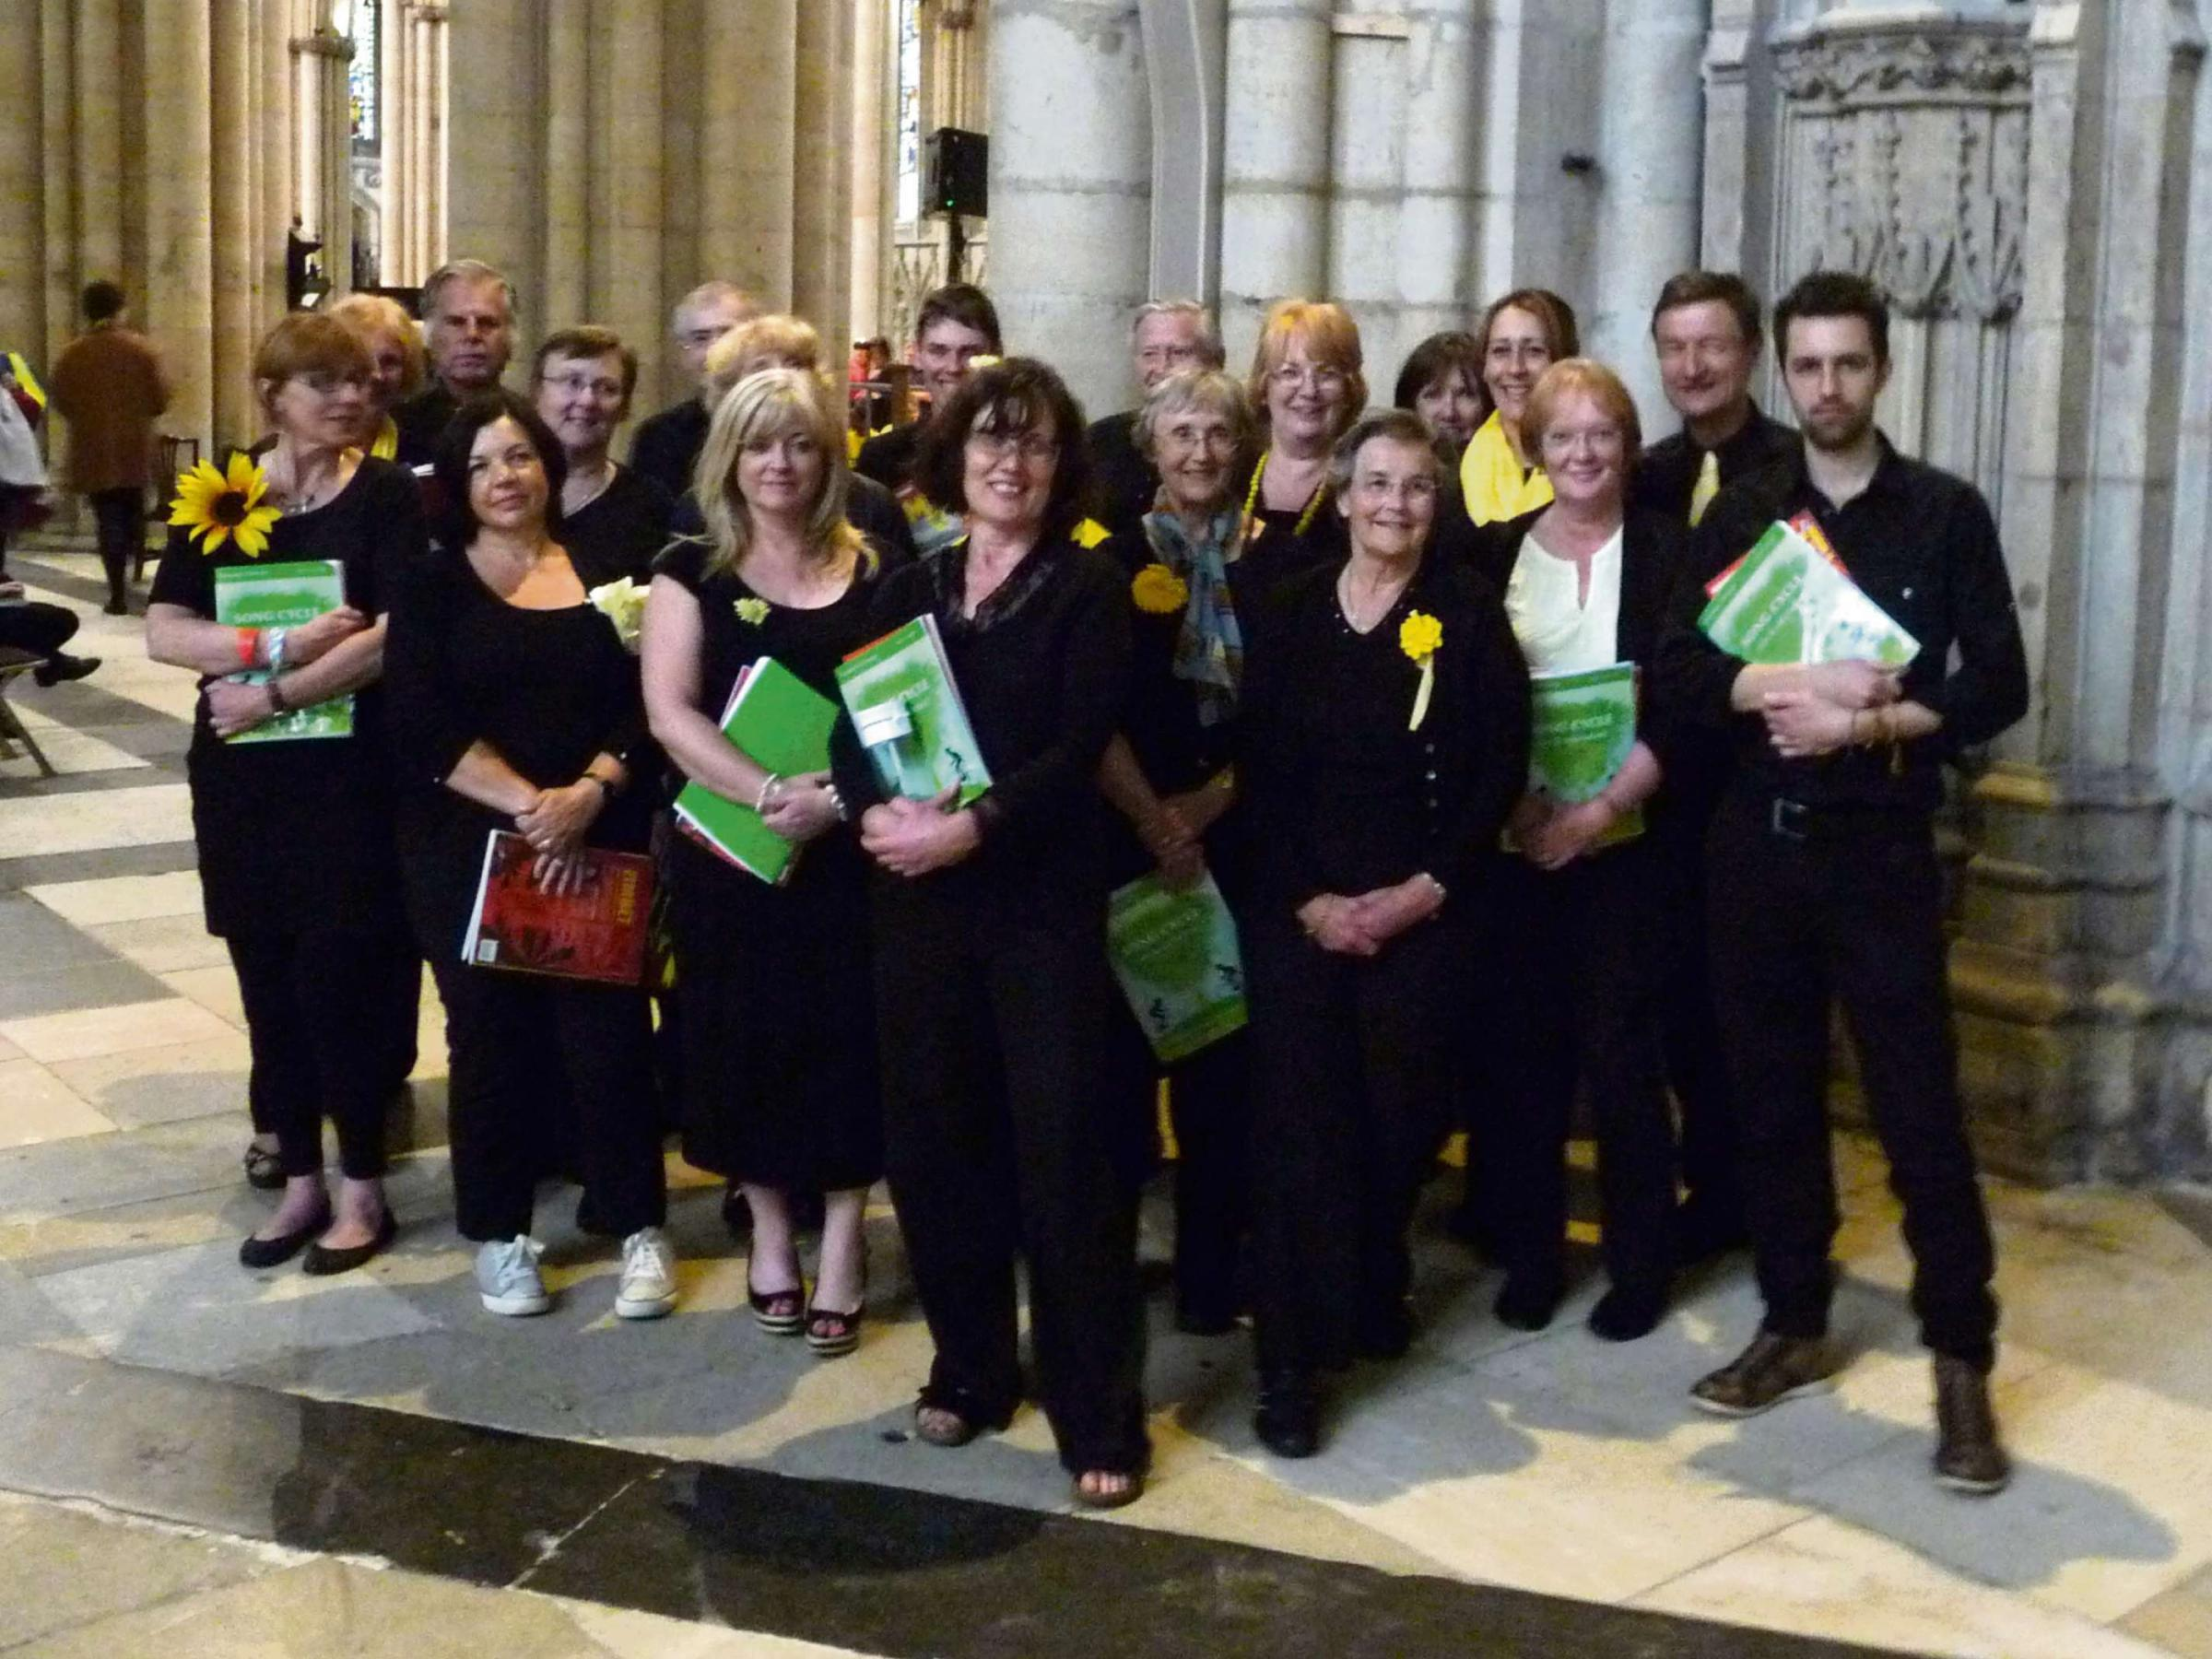 Members of Cantores Olicanae at York Minster